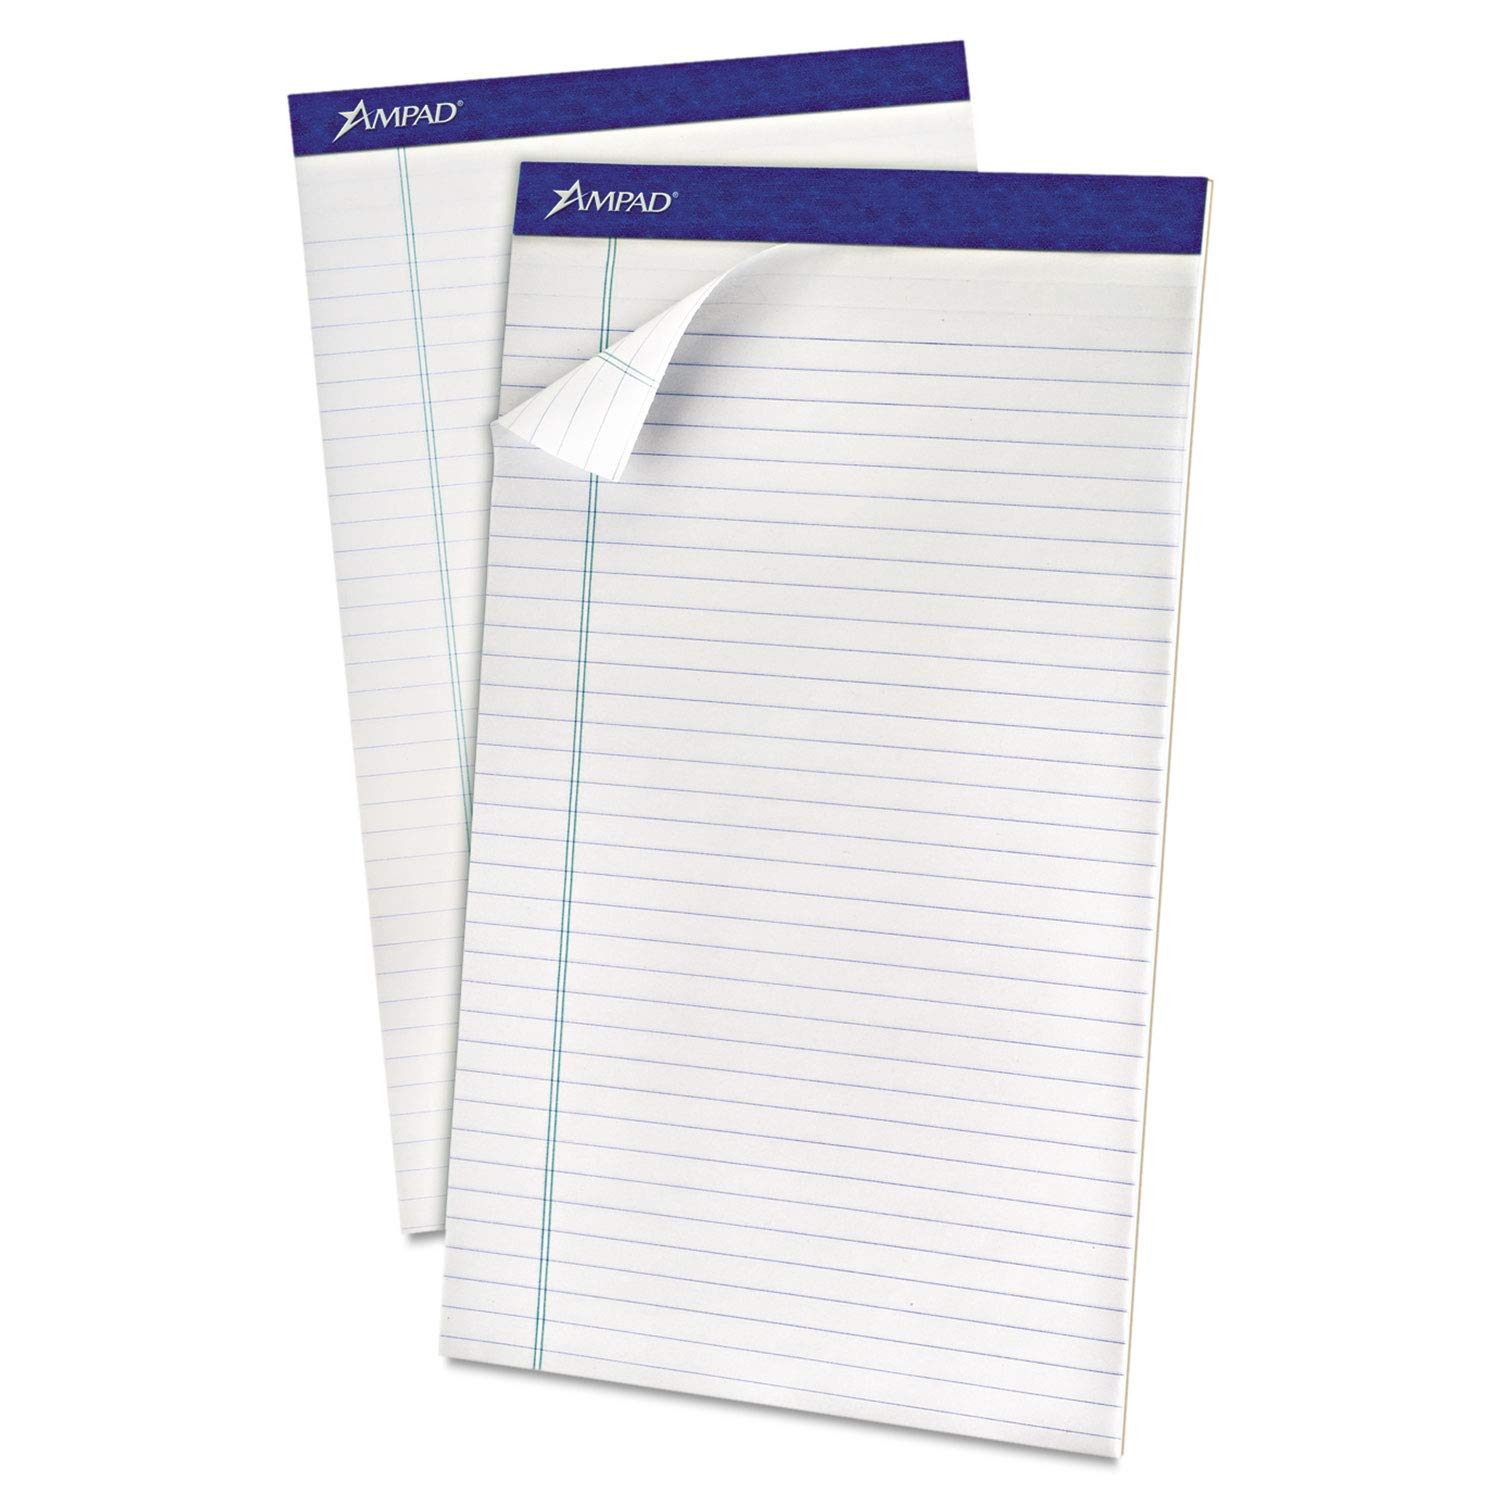 Ampad Recycled Writing Pads, Legal, White, 50 Sheets, Dozen - 20-180